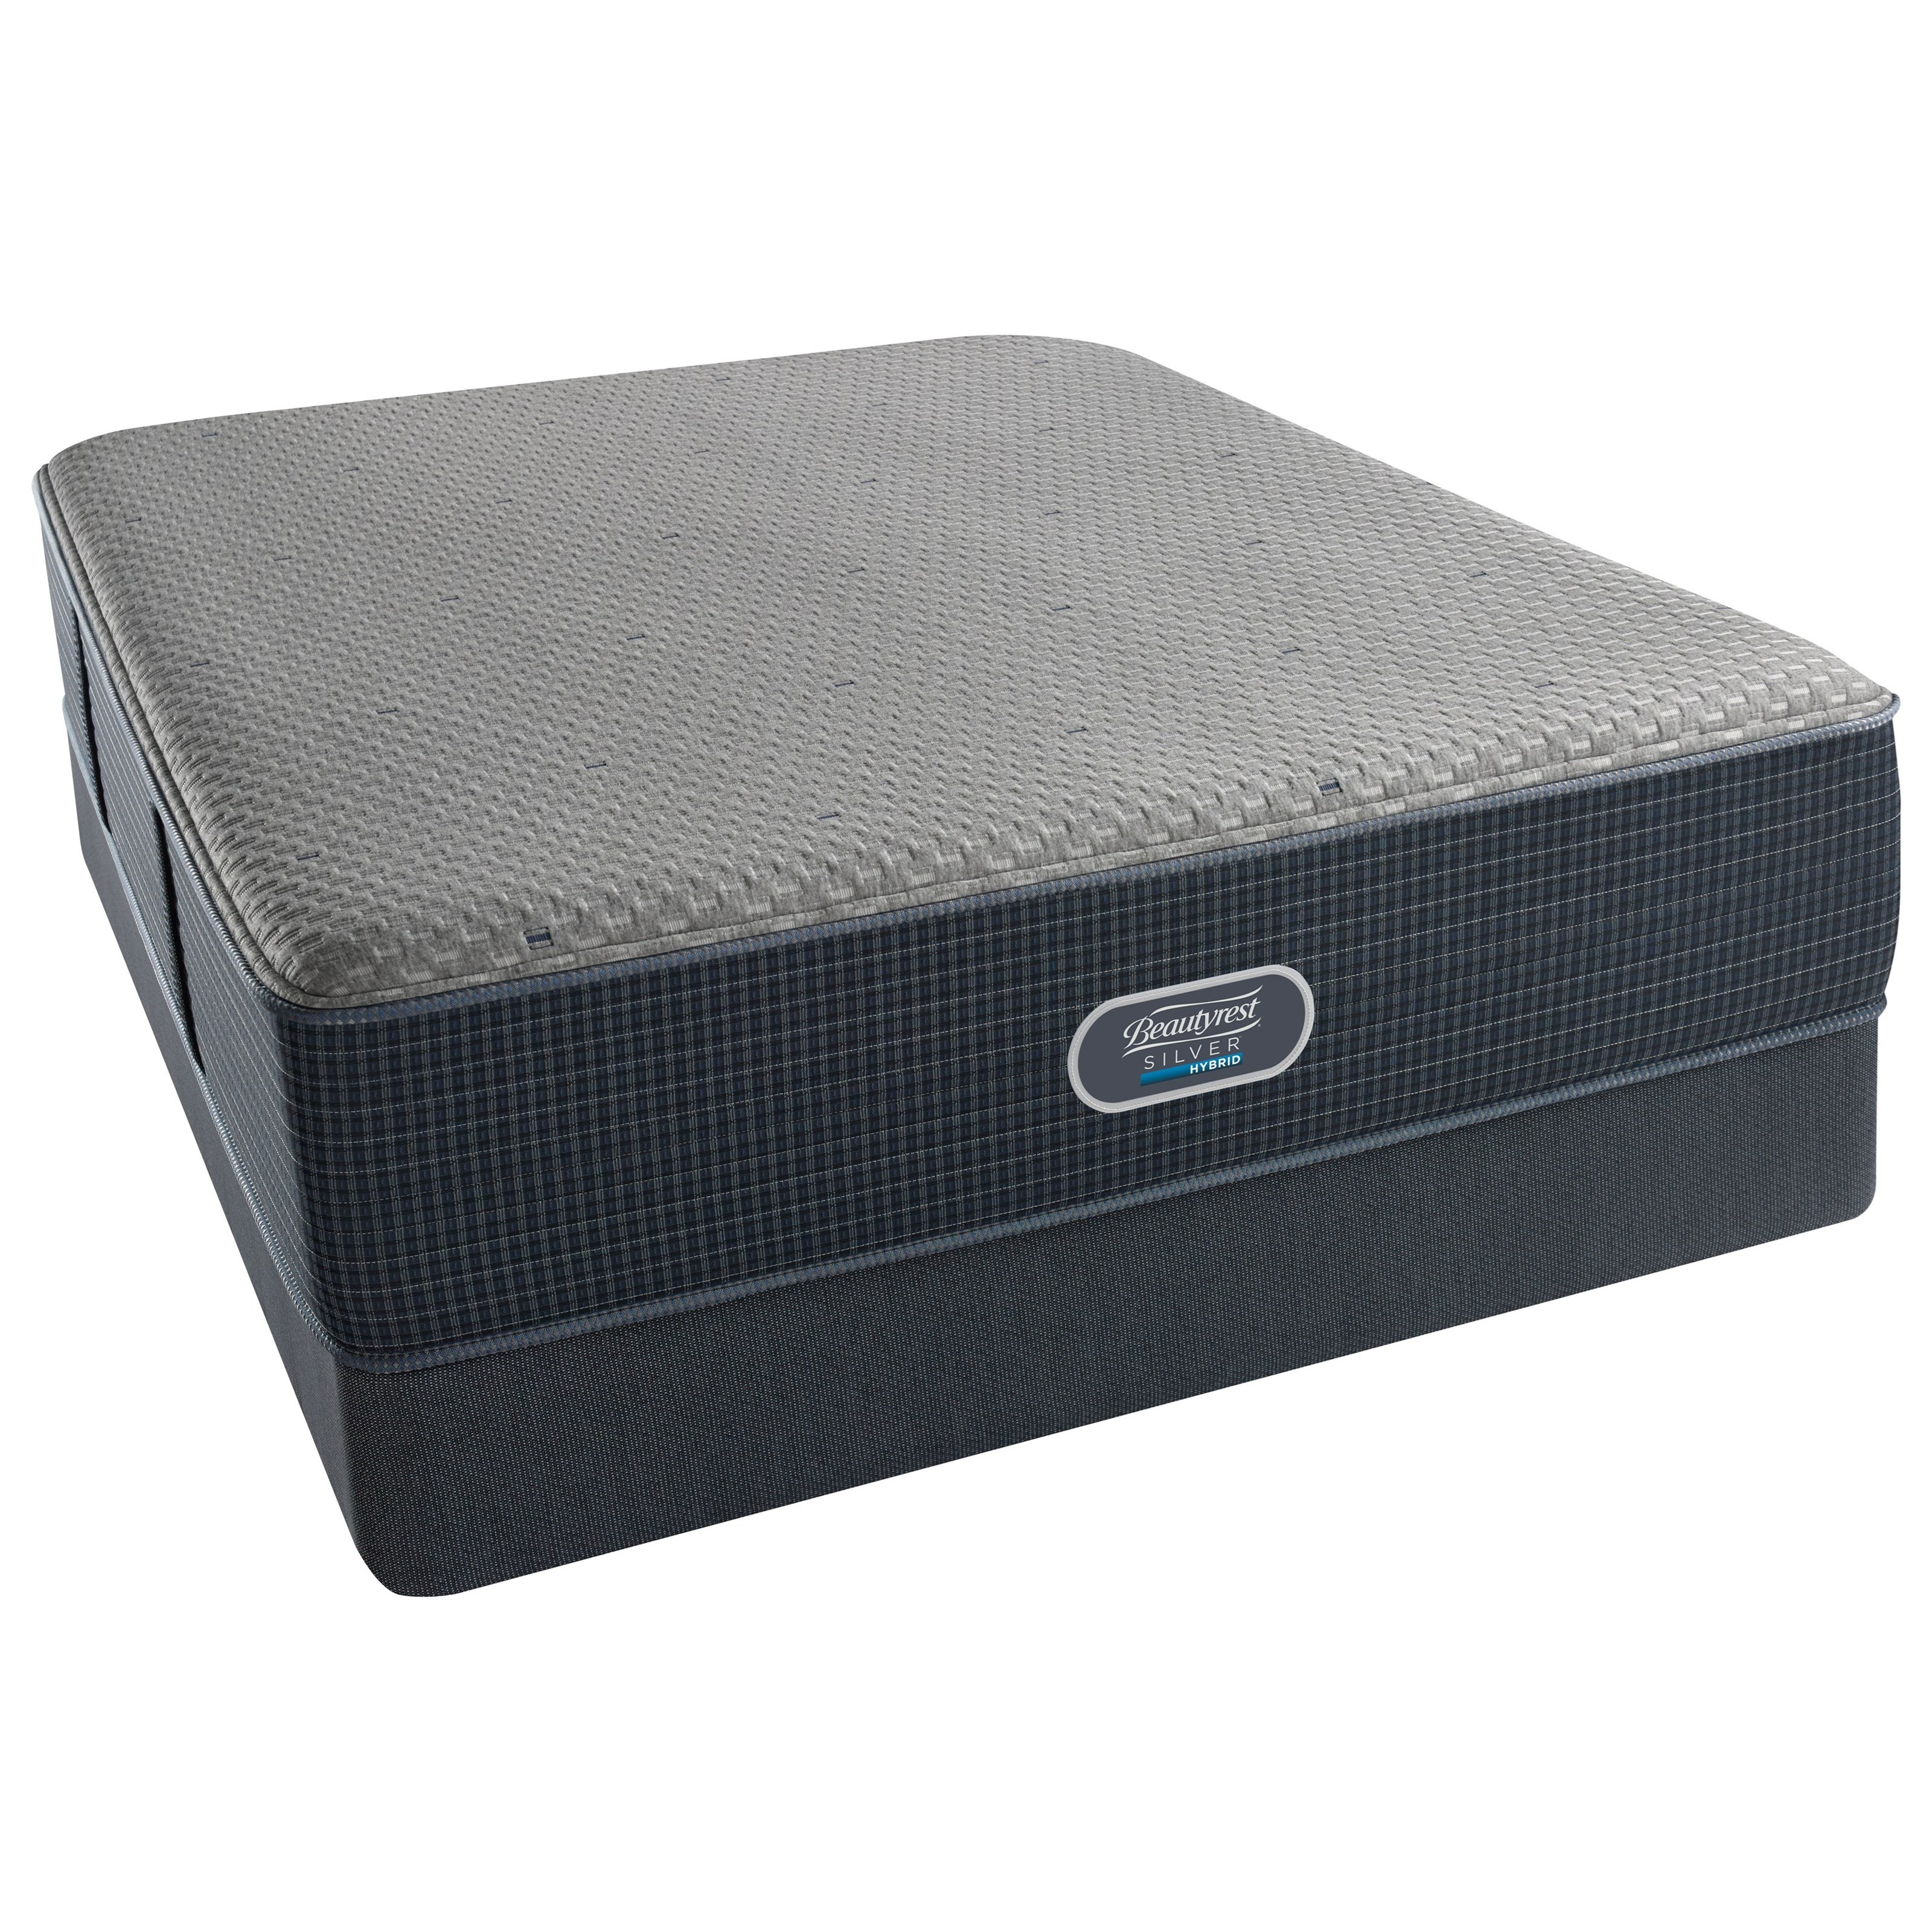 Beautyrest Silver Hybrid Harbour Beach Ultimate Plush Twin Low Profile Set - Item Number: 700601003-1010+700600254-6010